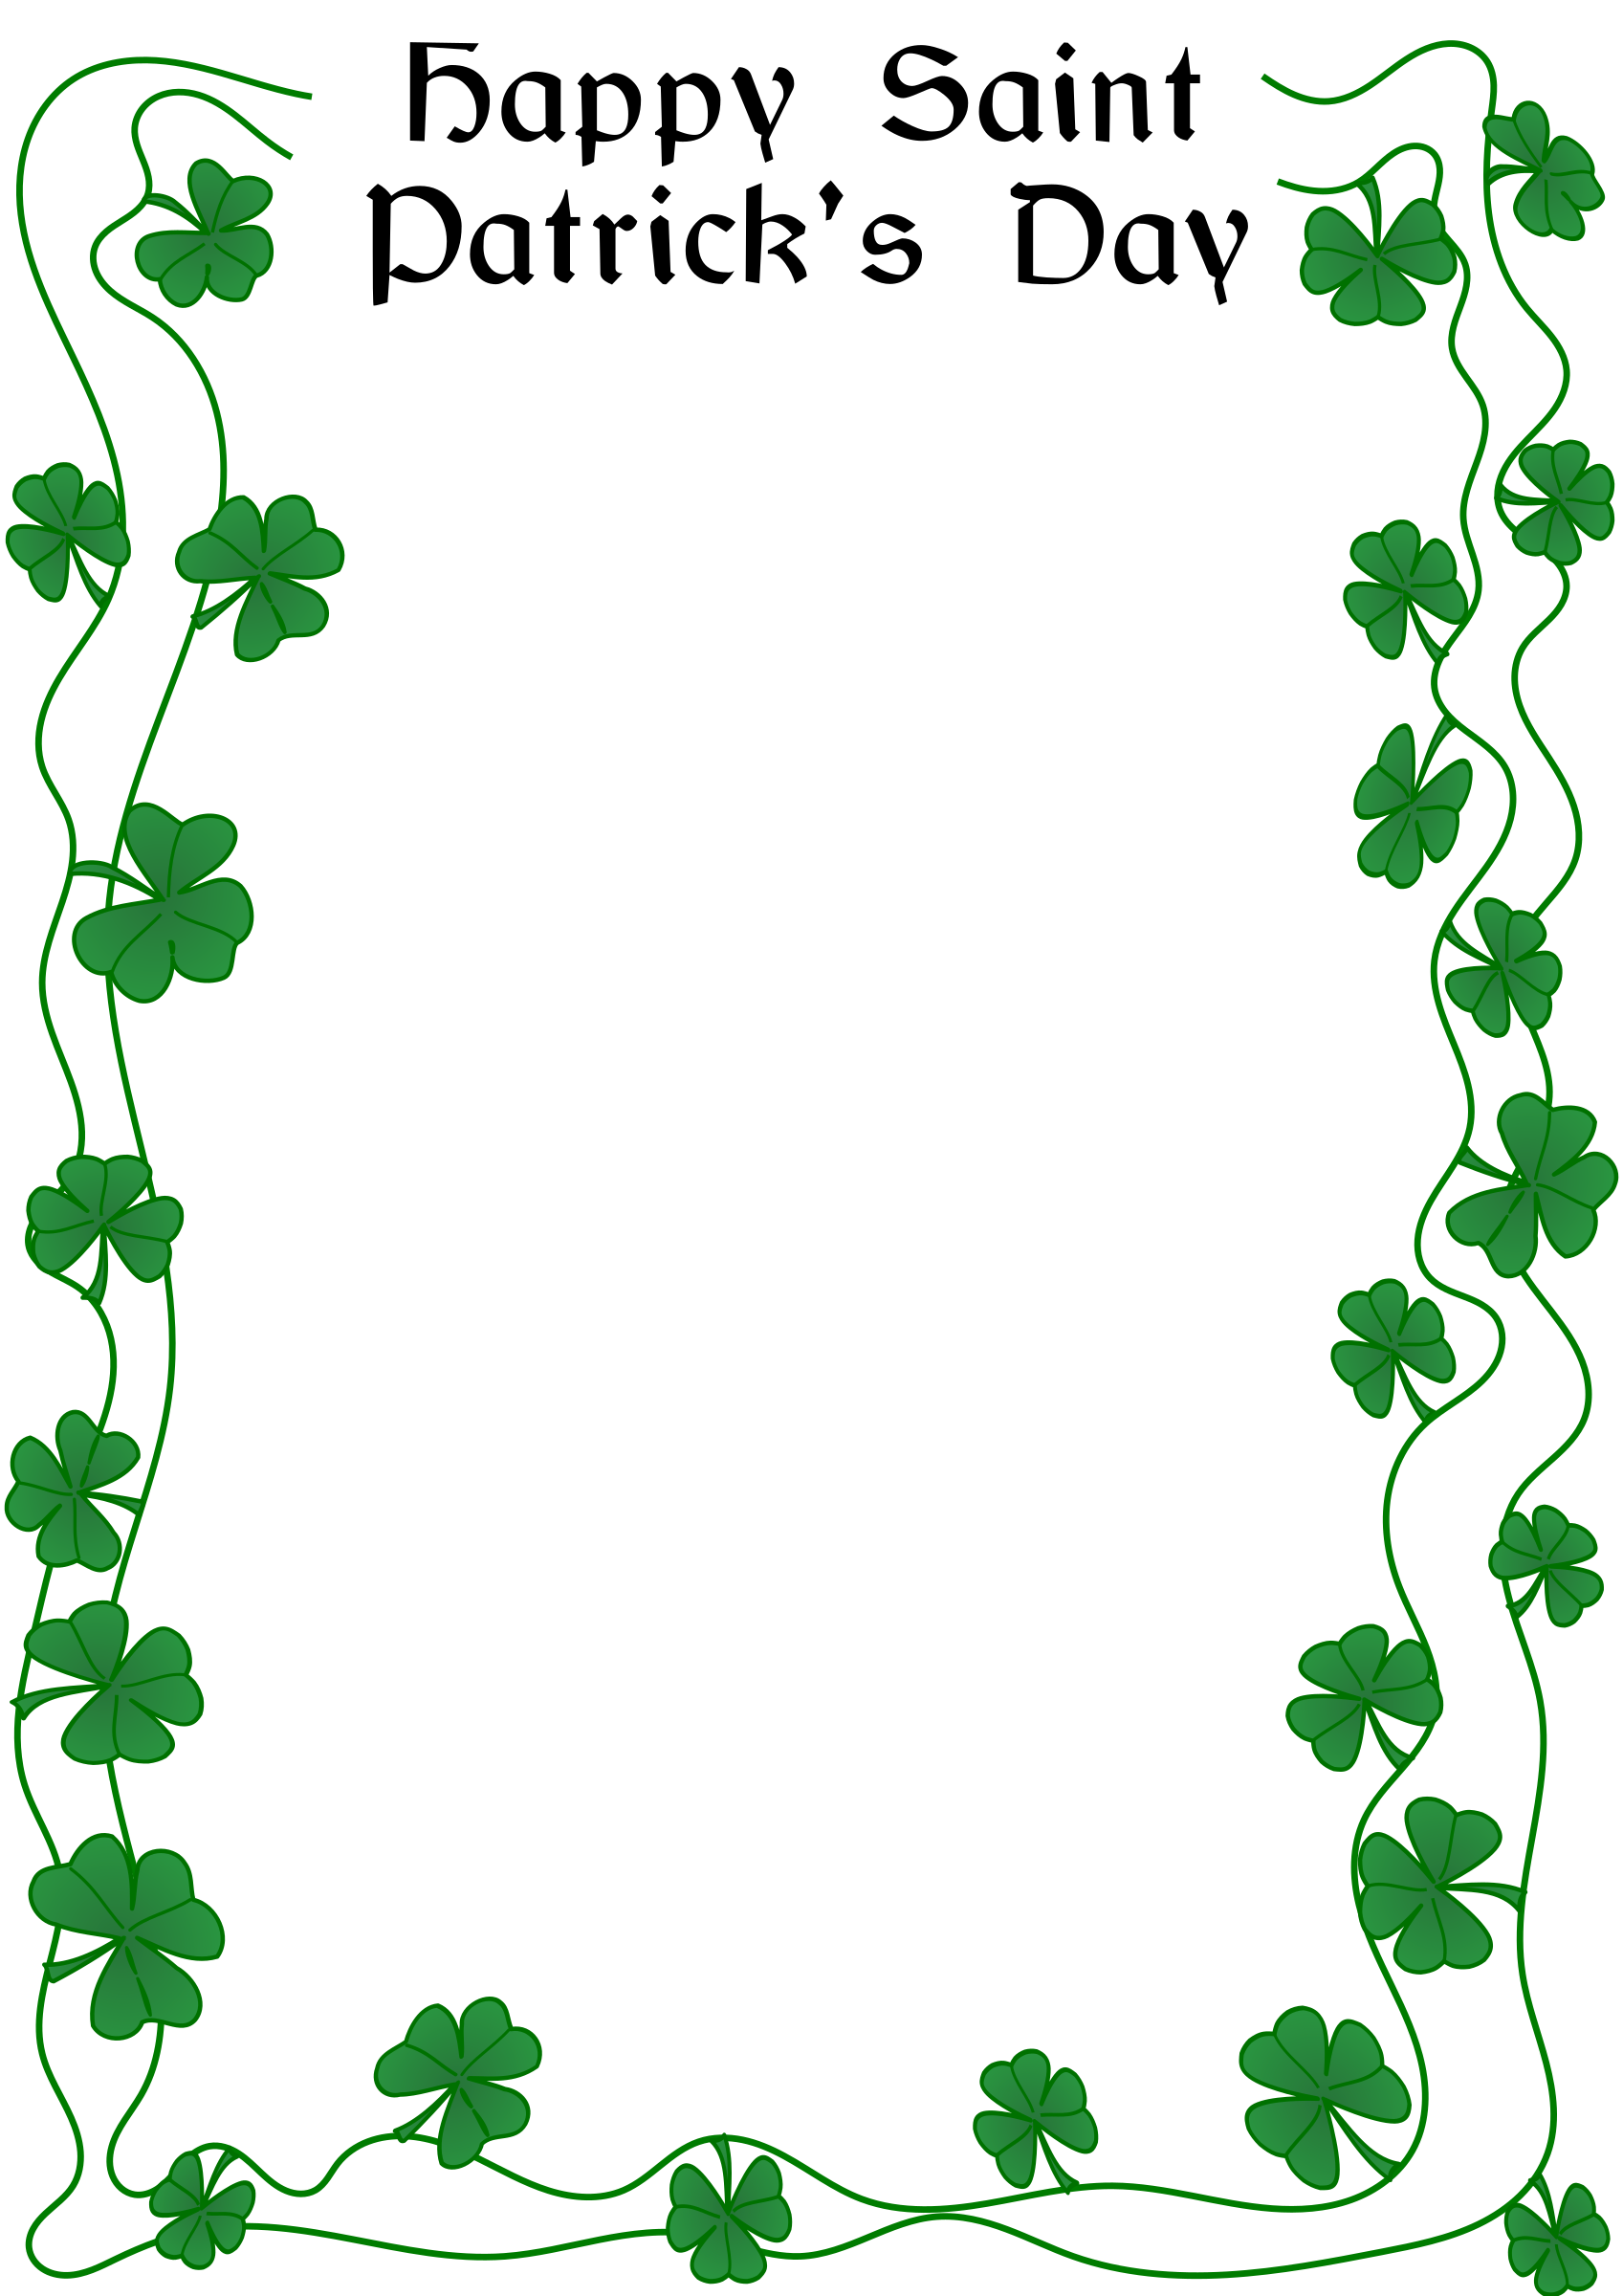 st patrick-s day clipart downloadable